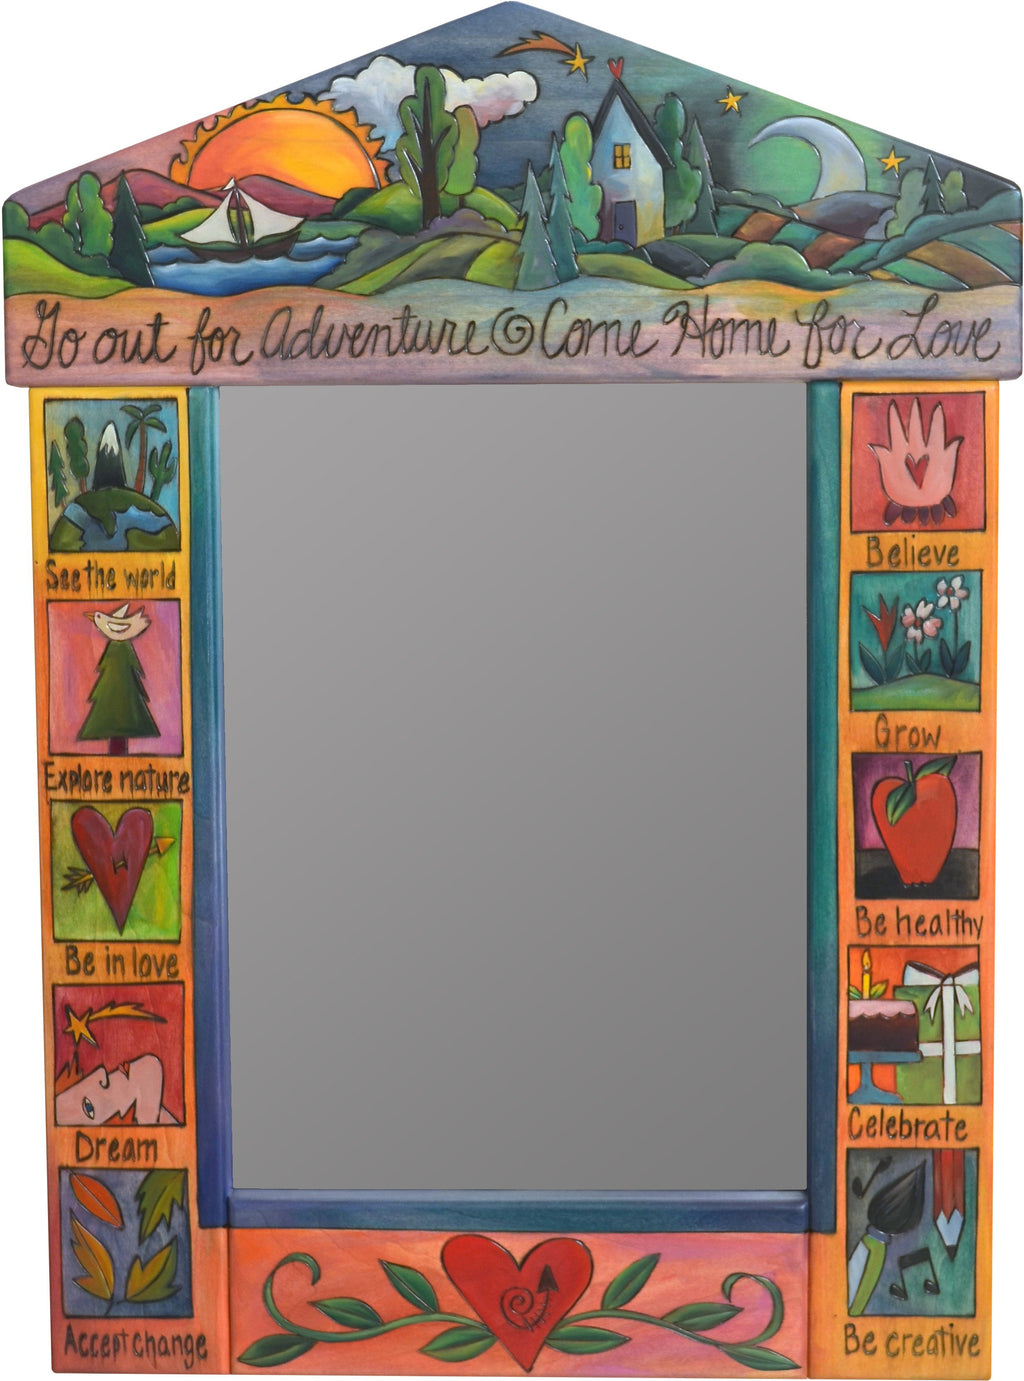 "Medium Mirror –  ""Go out for Adventure/Come Home for Love"" mirror with transition from day to night on the horizon motif"